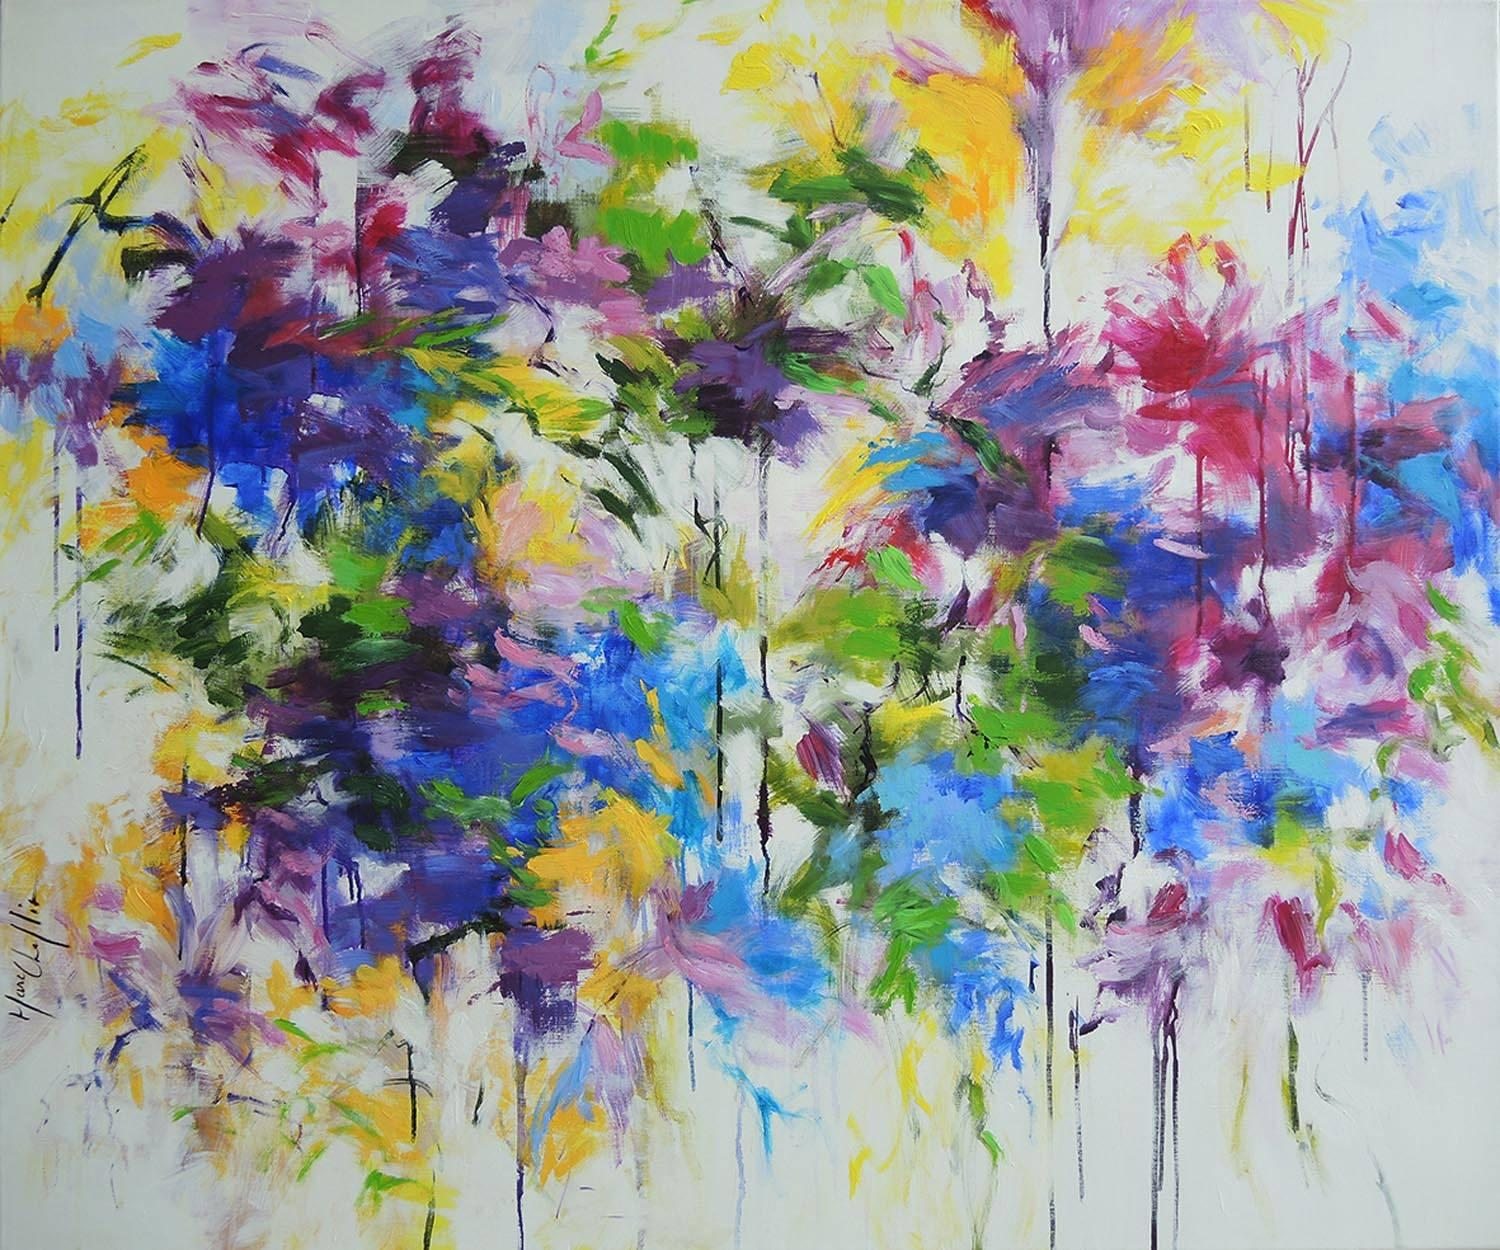 The Era of Flowers, bright and bold abstract painting